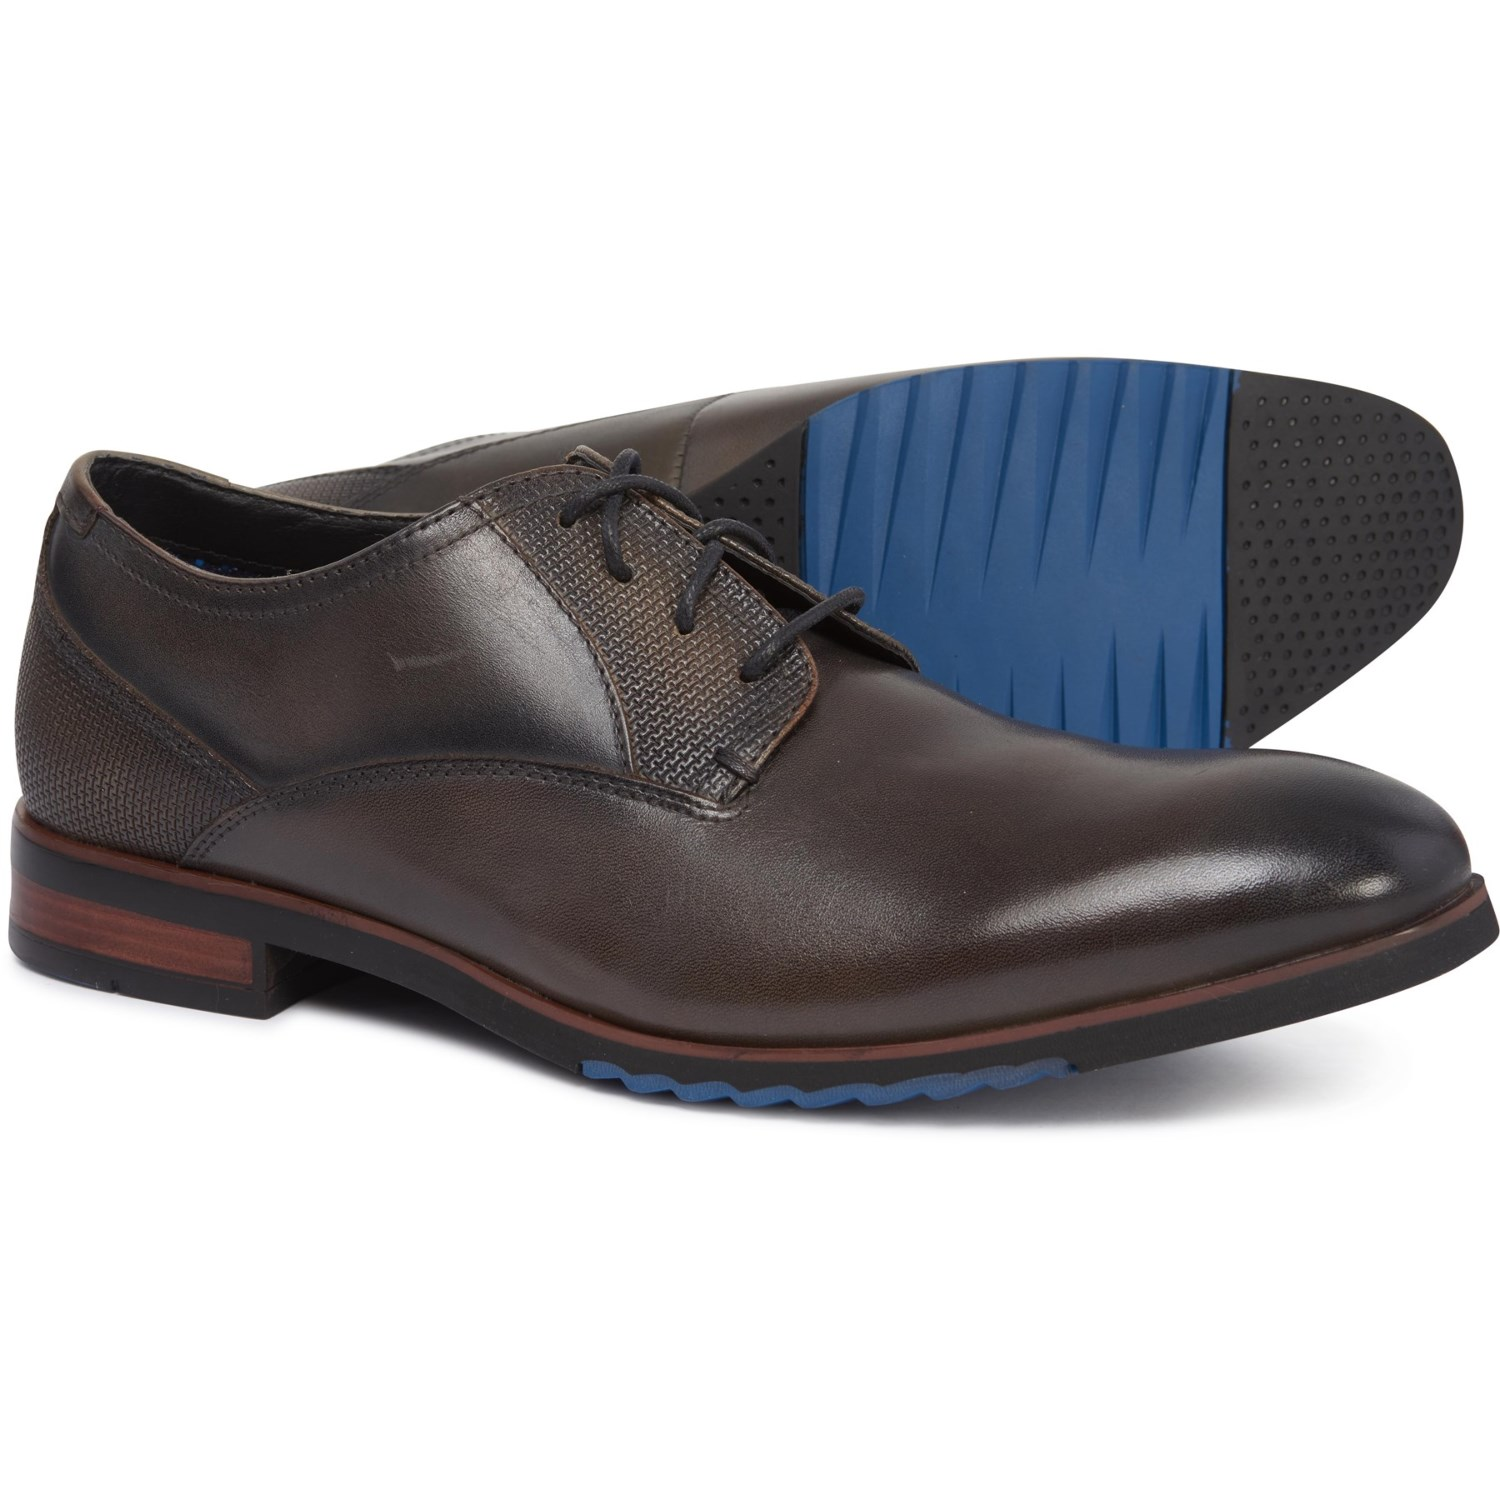 4446635a81a Steve Madden Lawton Oxford Shoes - Leather (For Men)